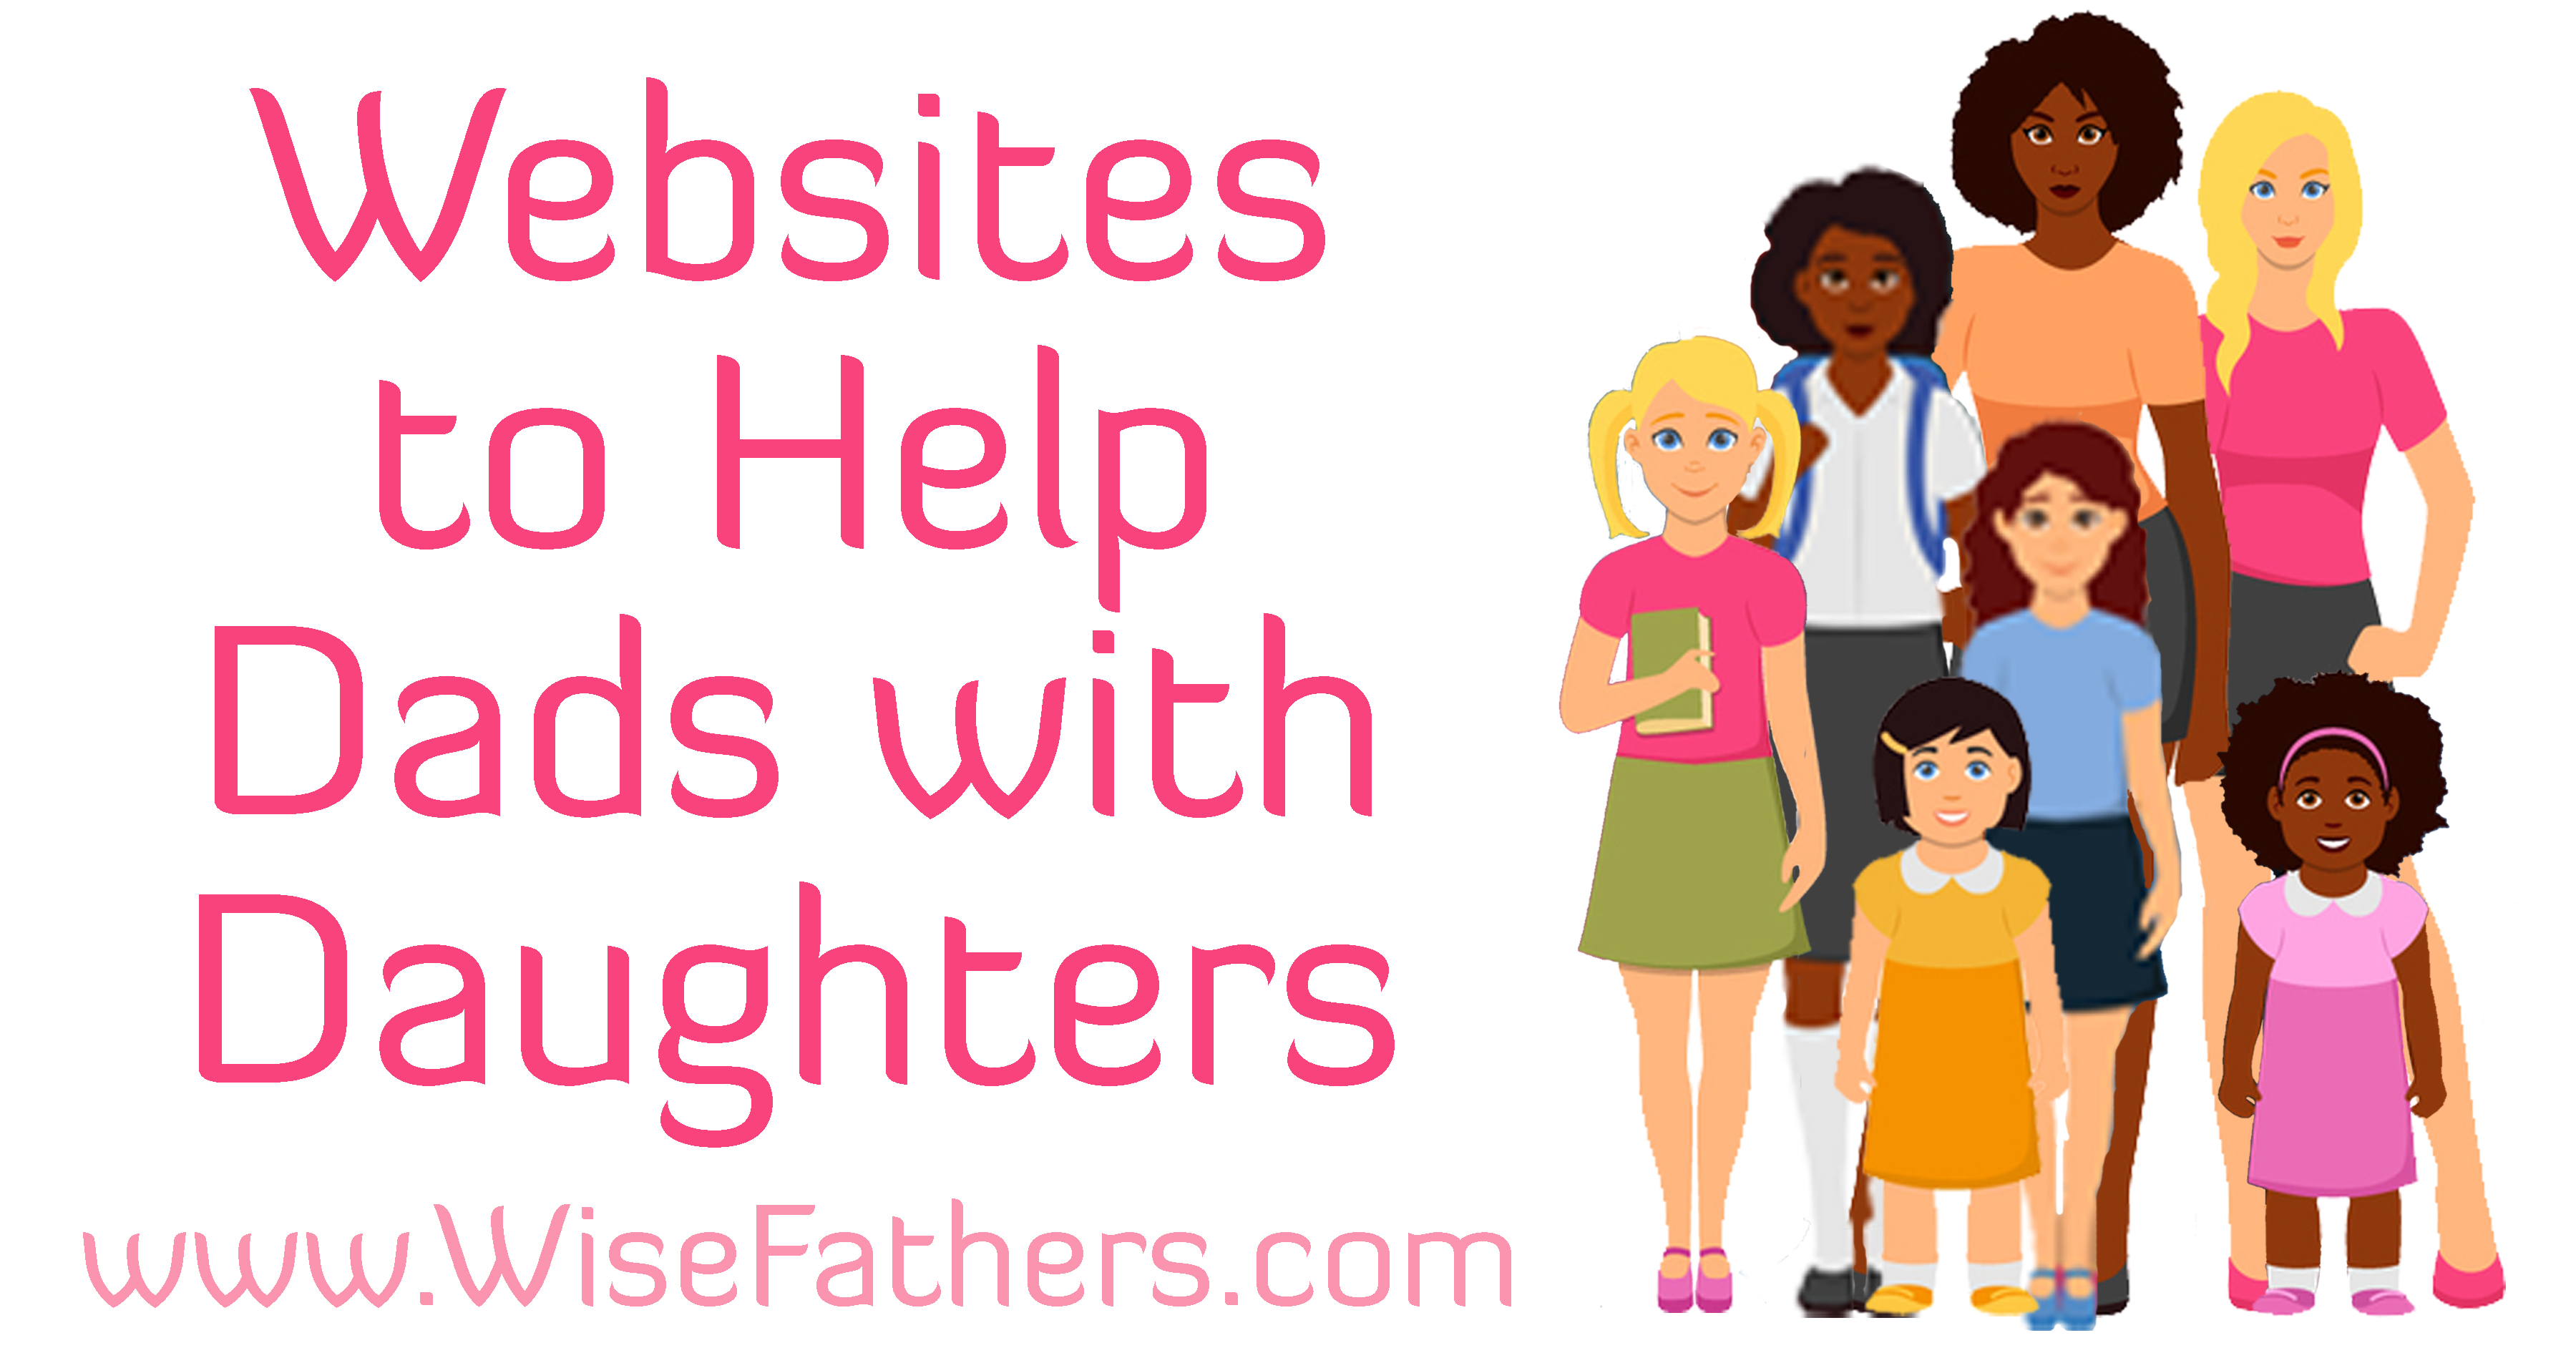 Websites to Help Dads with Daughters